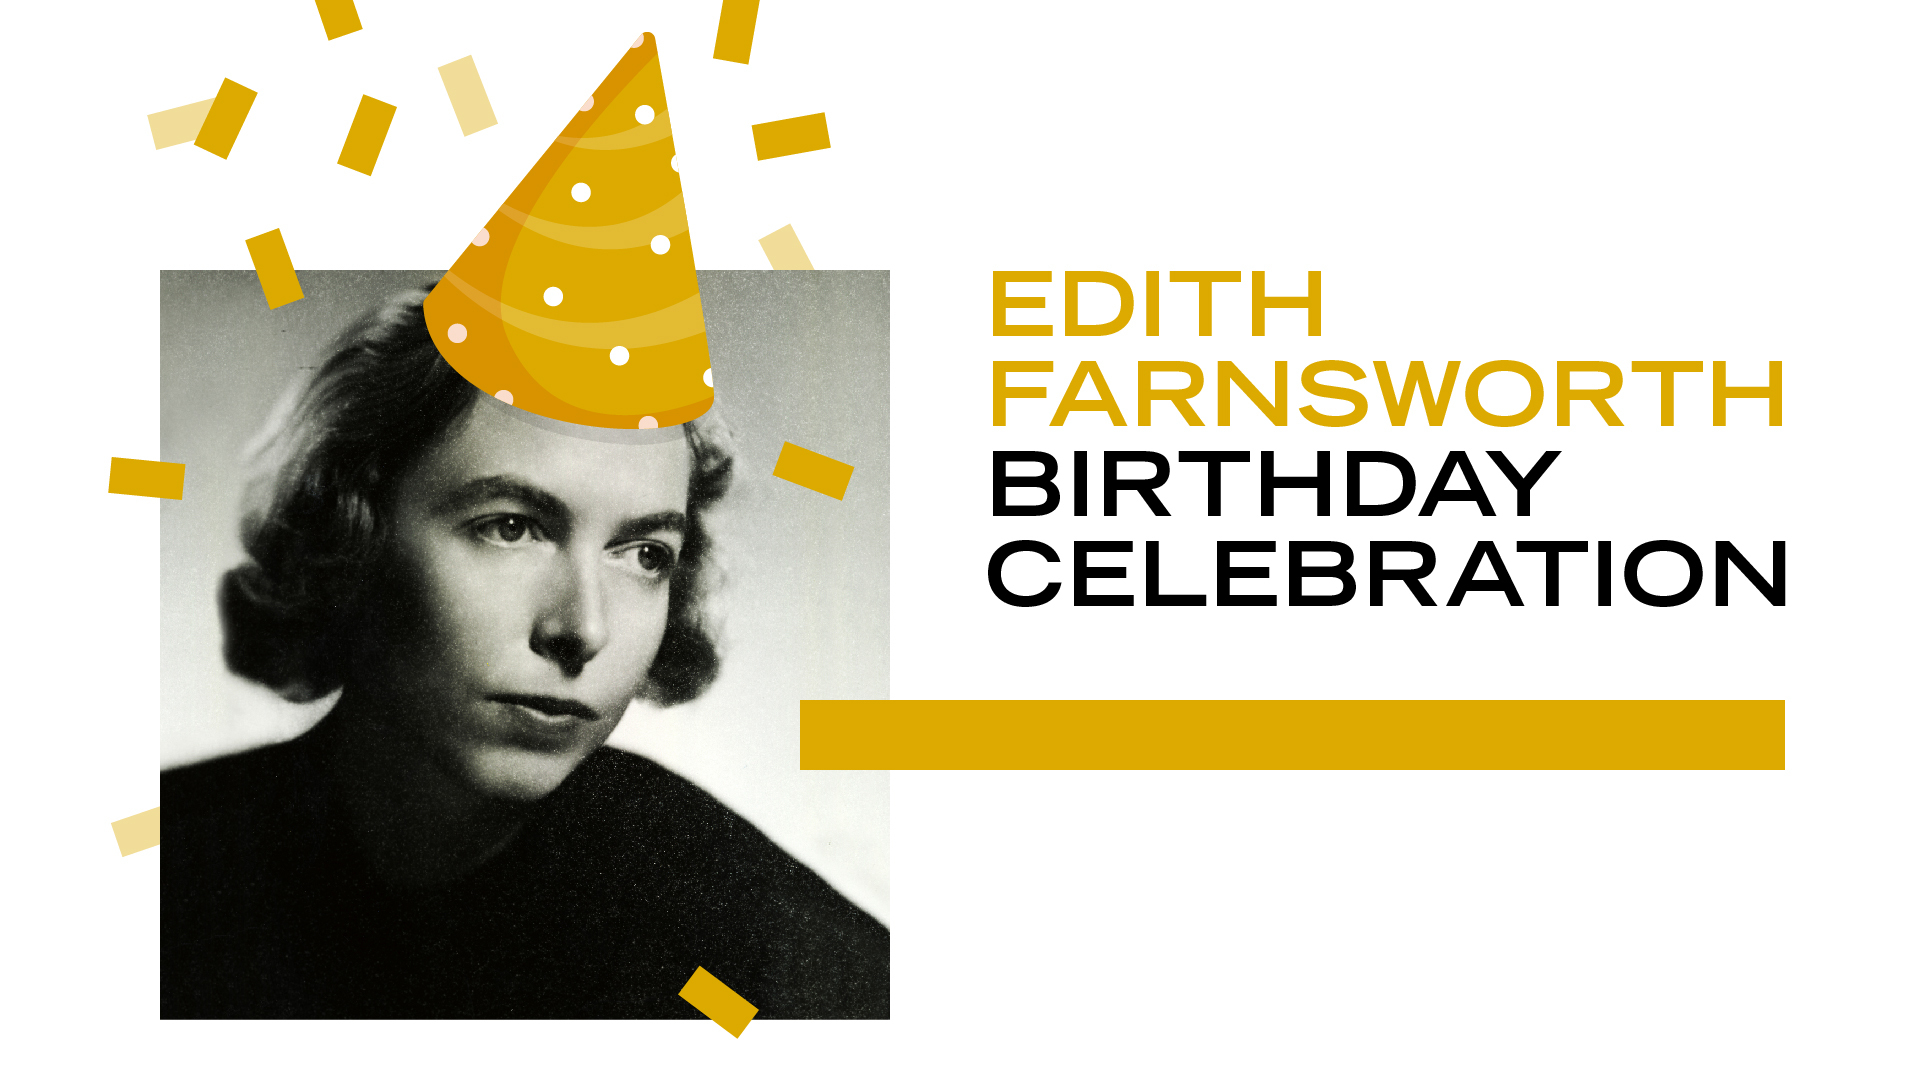 Edith Farnsworth's Birthday Celebration